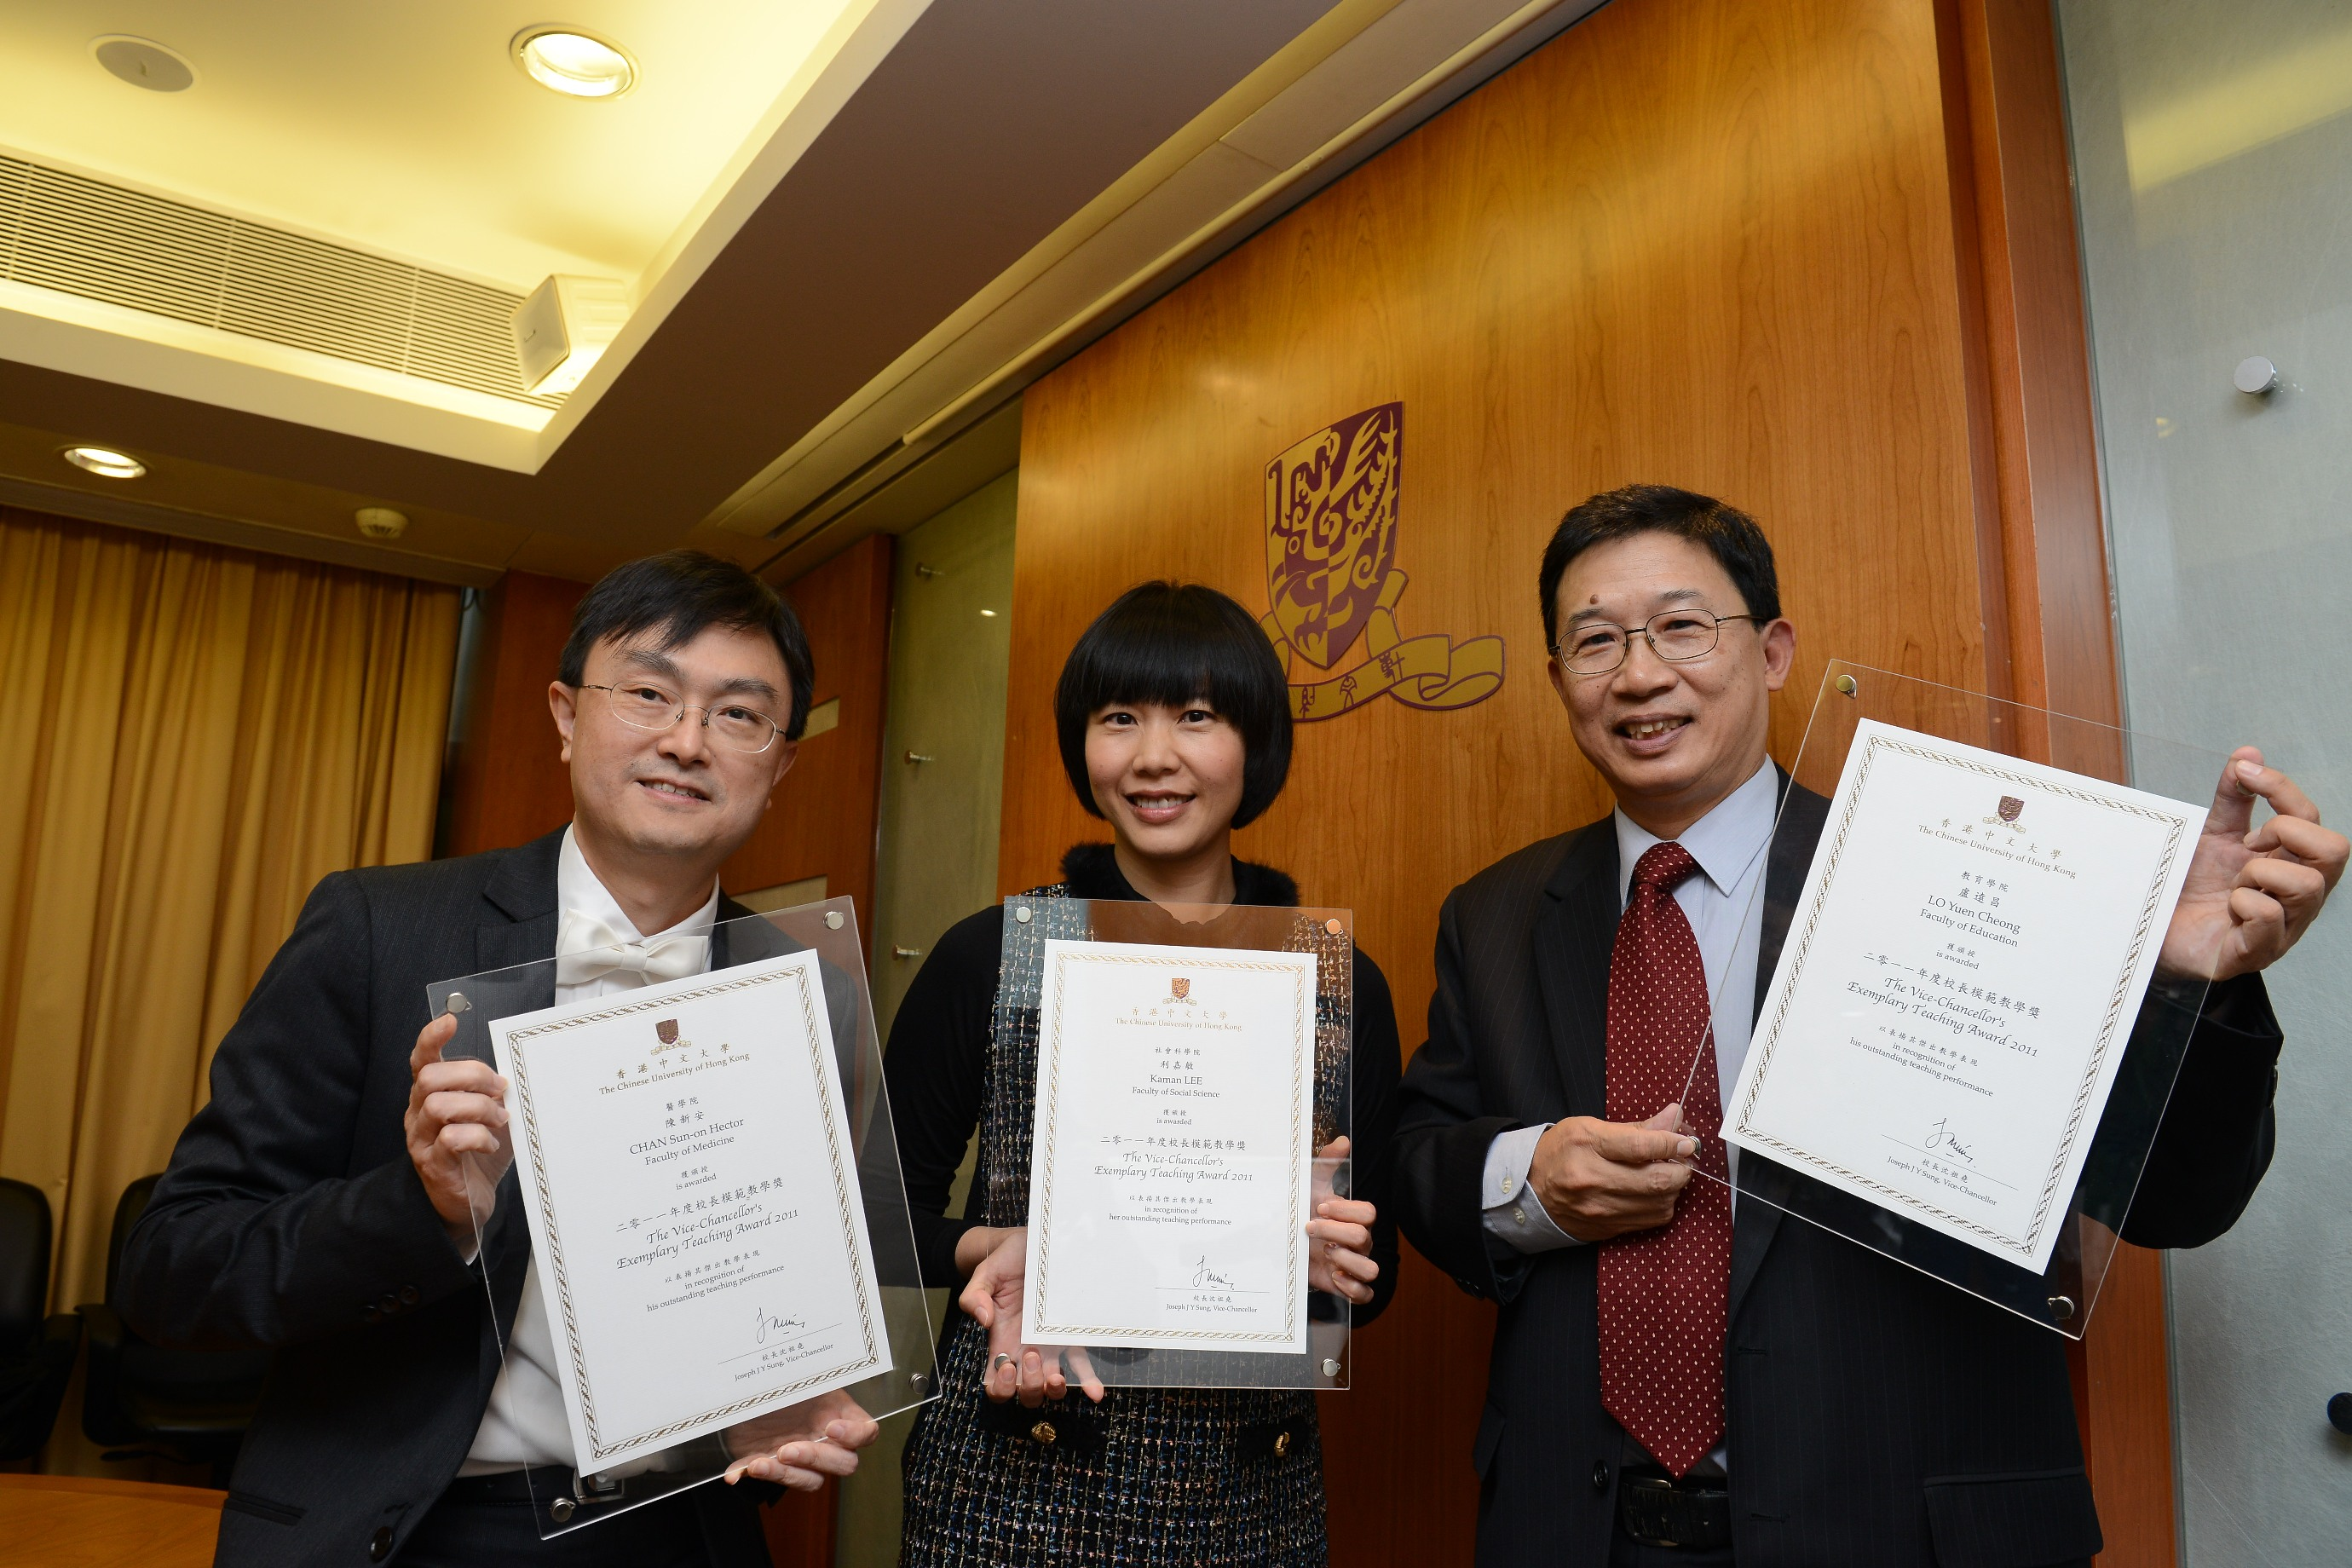 (From left) Prof. Hector Chan, Prof. Kaman Lee and Mr. Lo Yuen-cheong, awardees of Vice-Chancellor's Exemplary Teaching Award 2011, share their teaching experience.